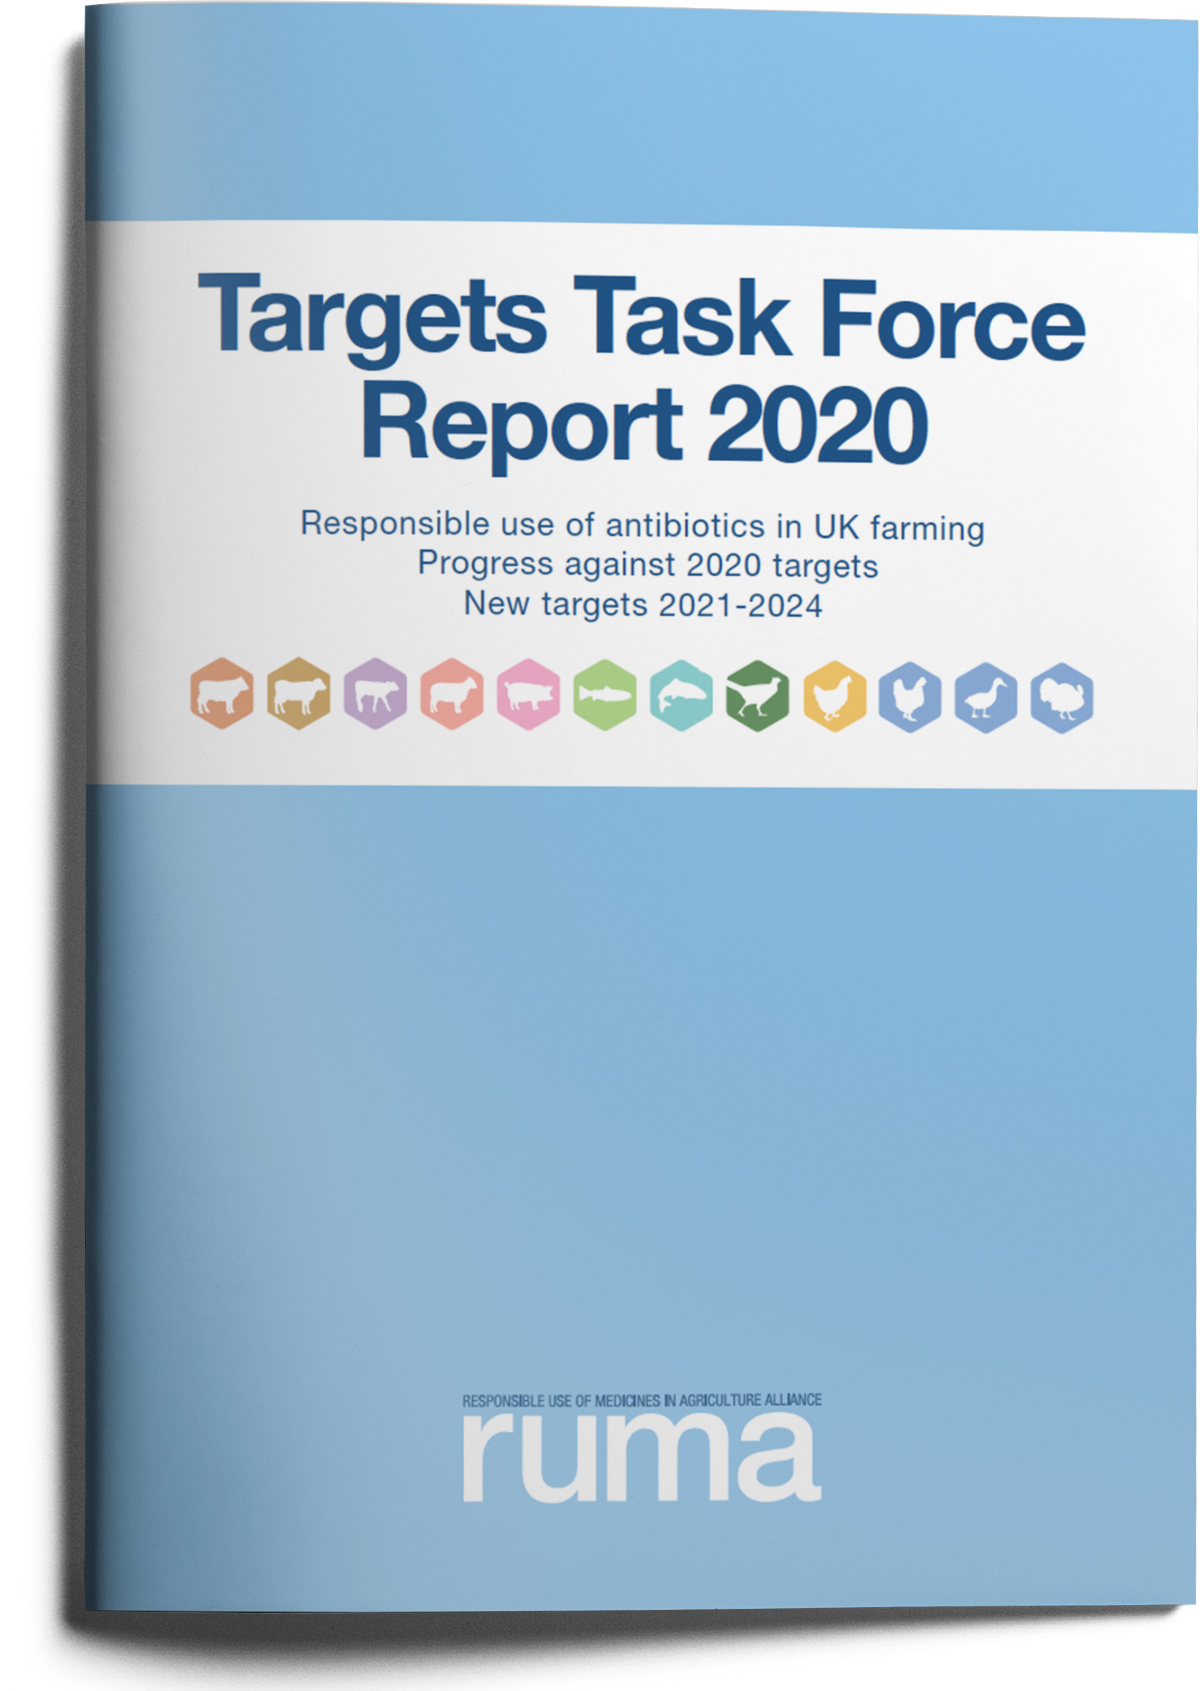 RUMA Targets Task Force Report in Full